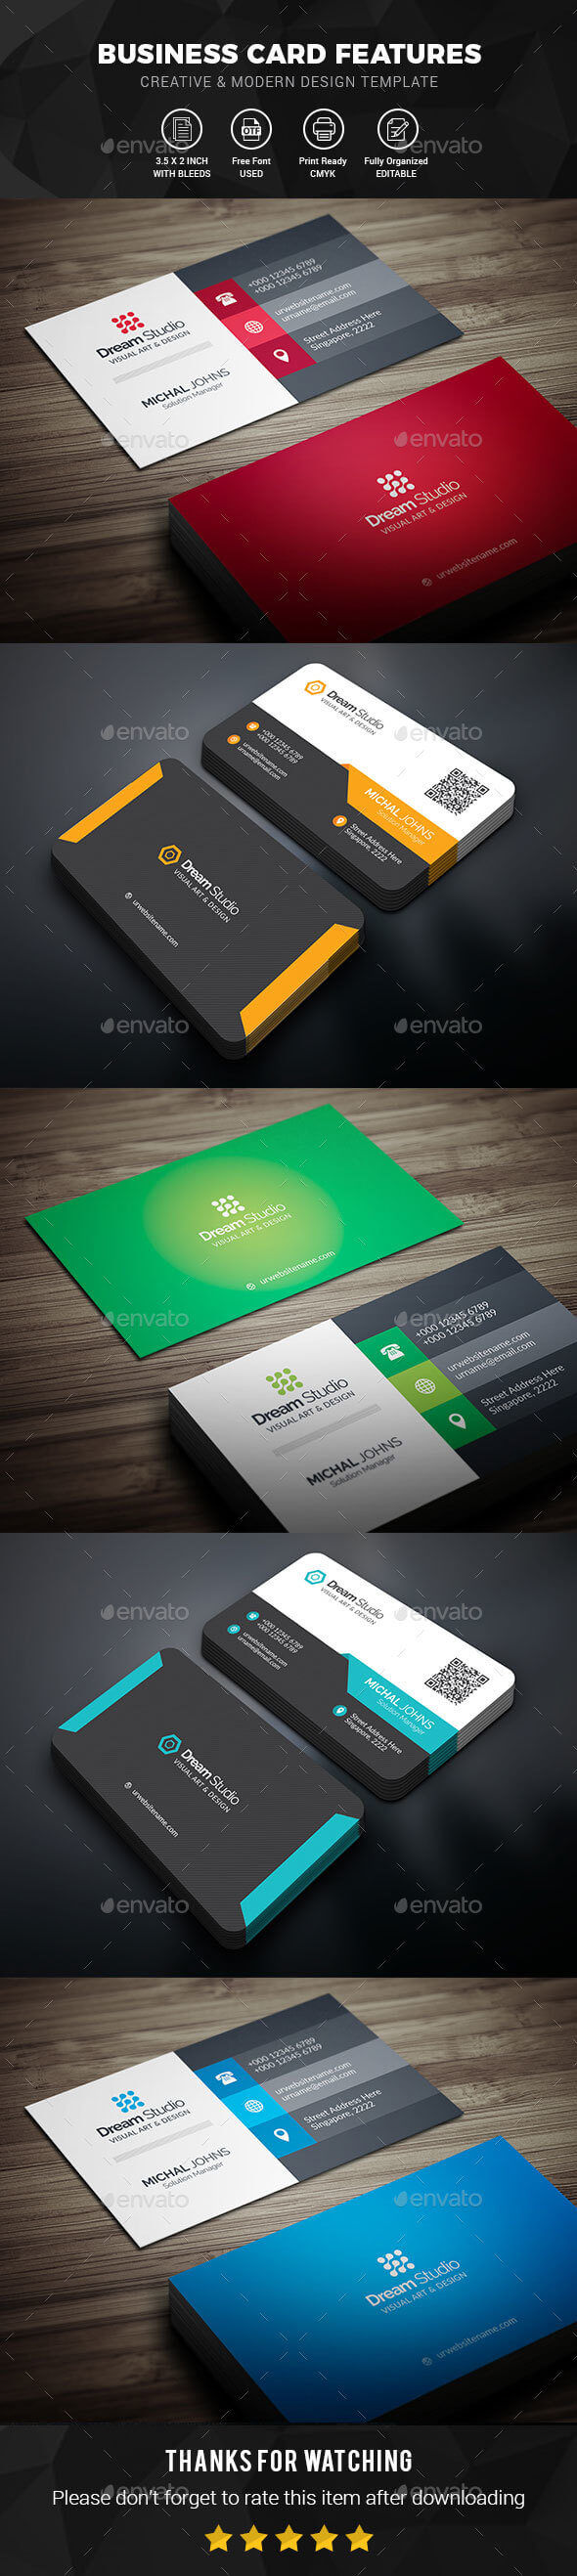 Business Card Templates & Designs From Graphicriver Intended For Business Card Maker Template